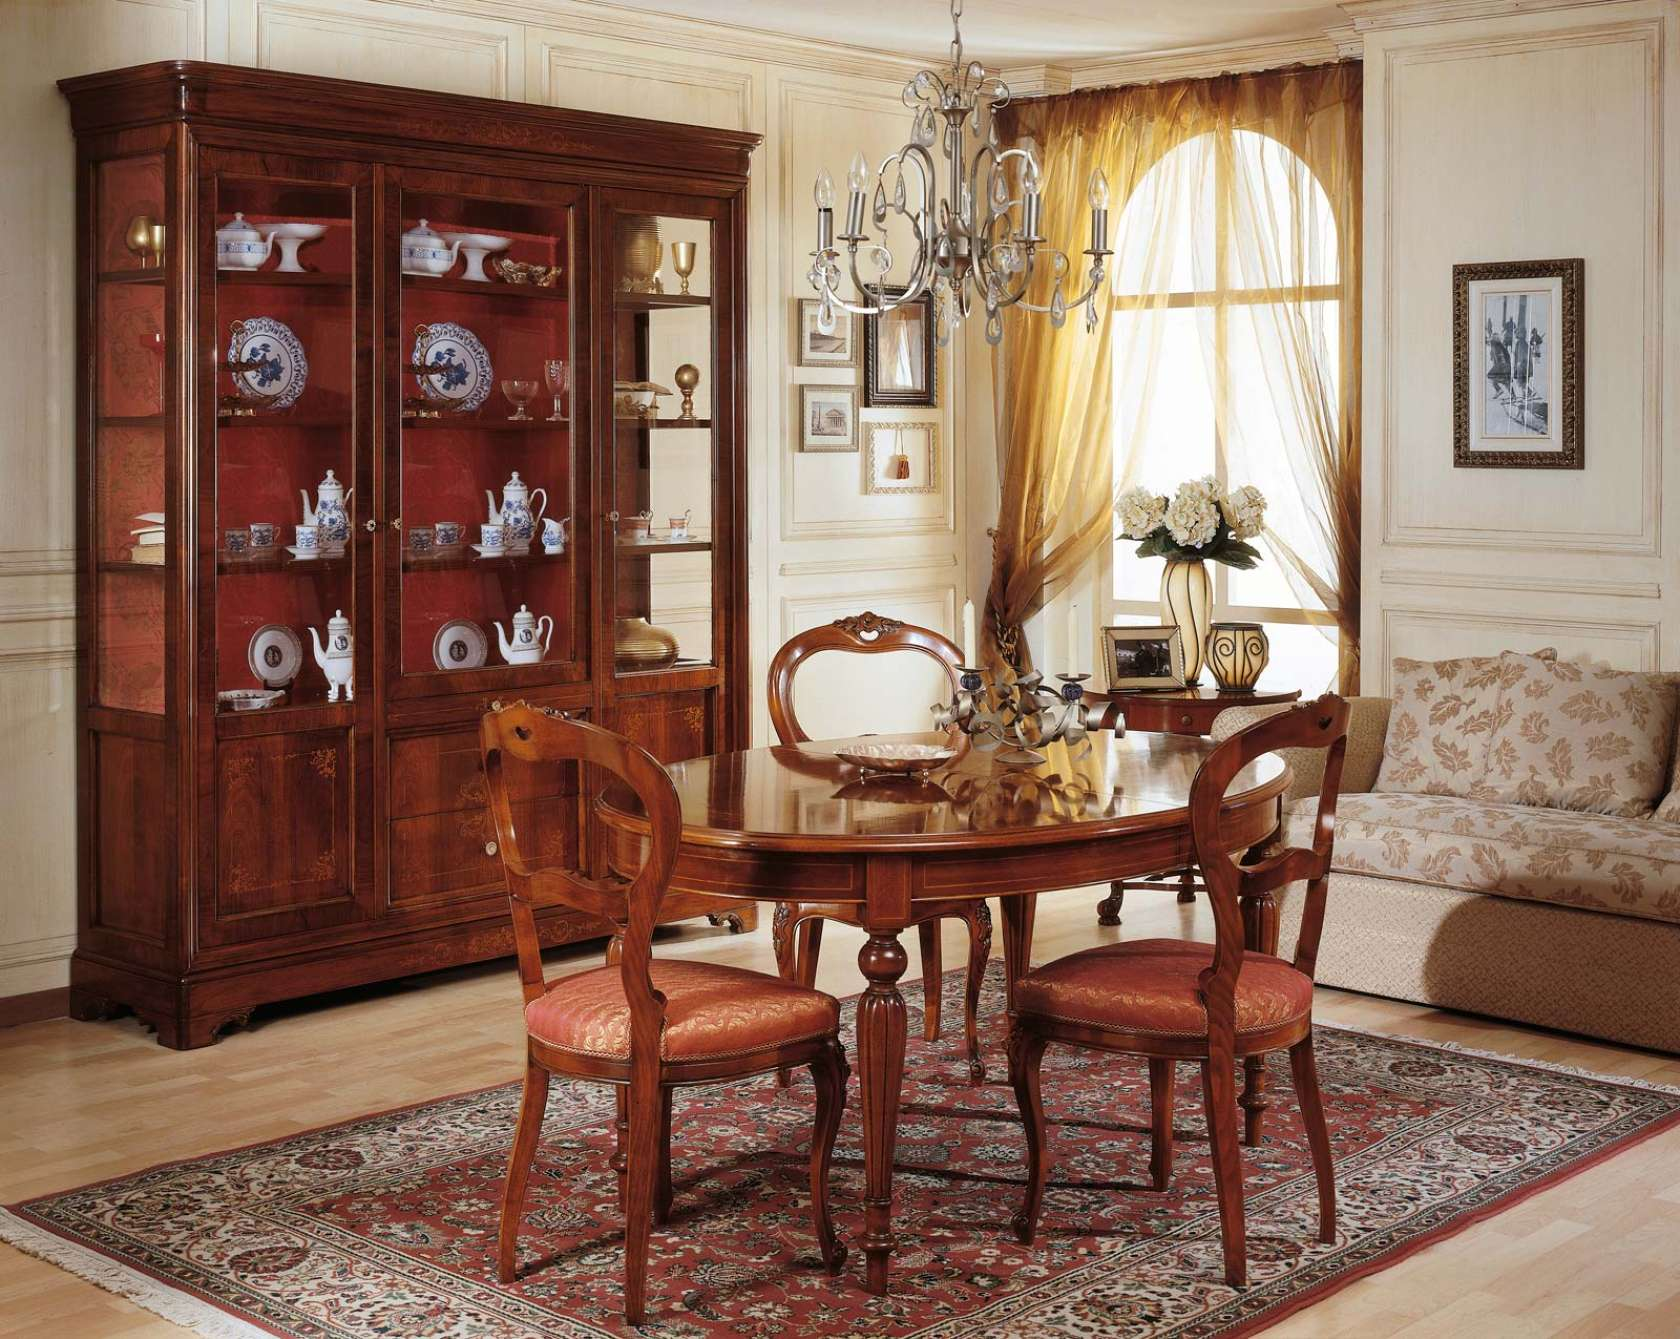 Dining Room French 19th Century, Table And Glass Showcase